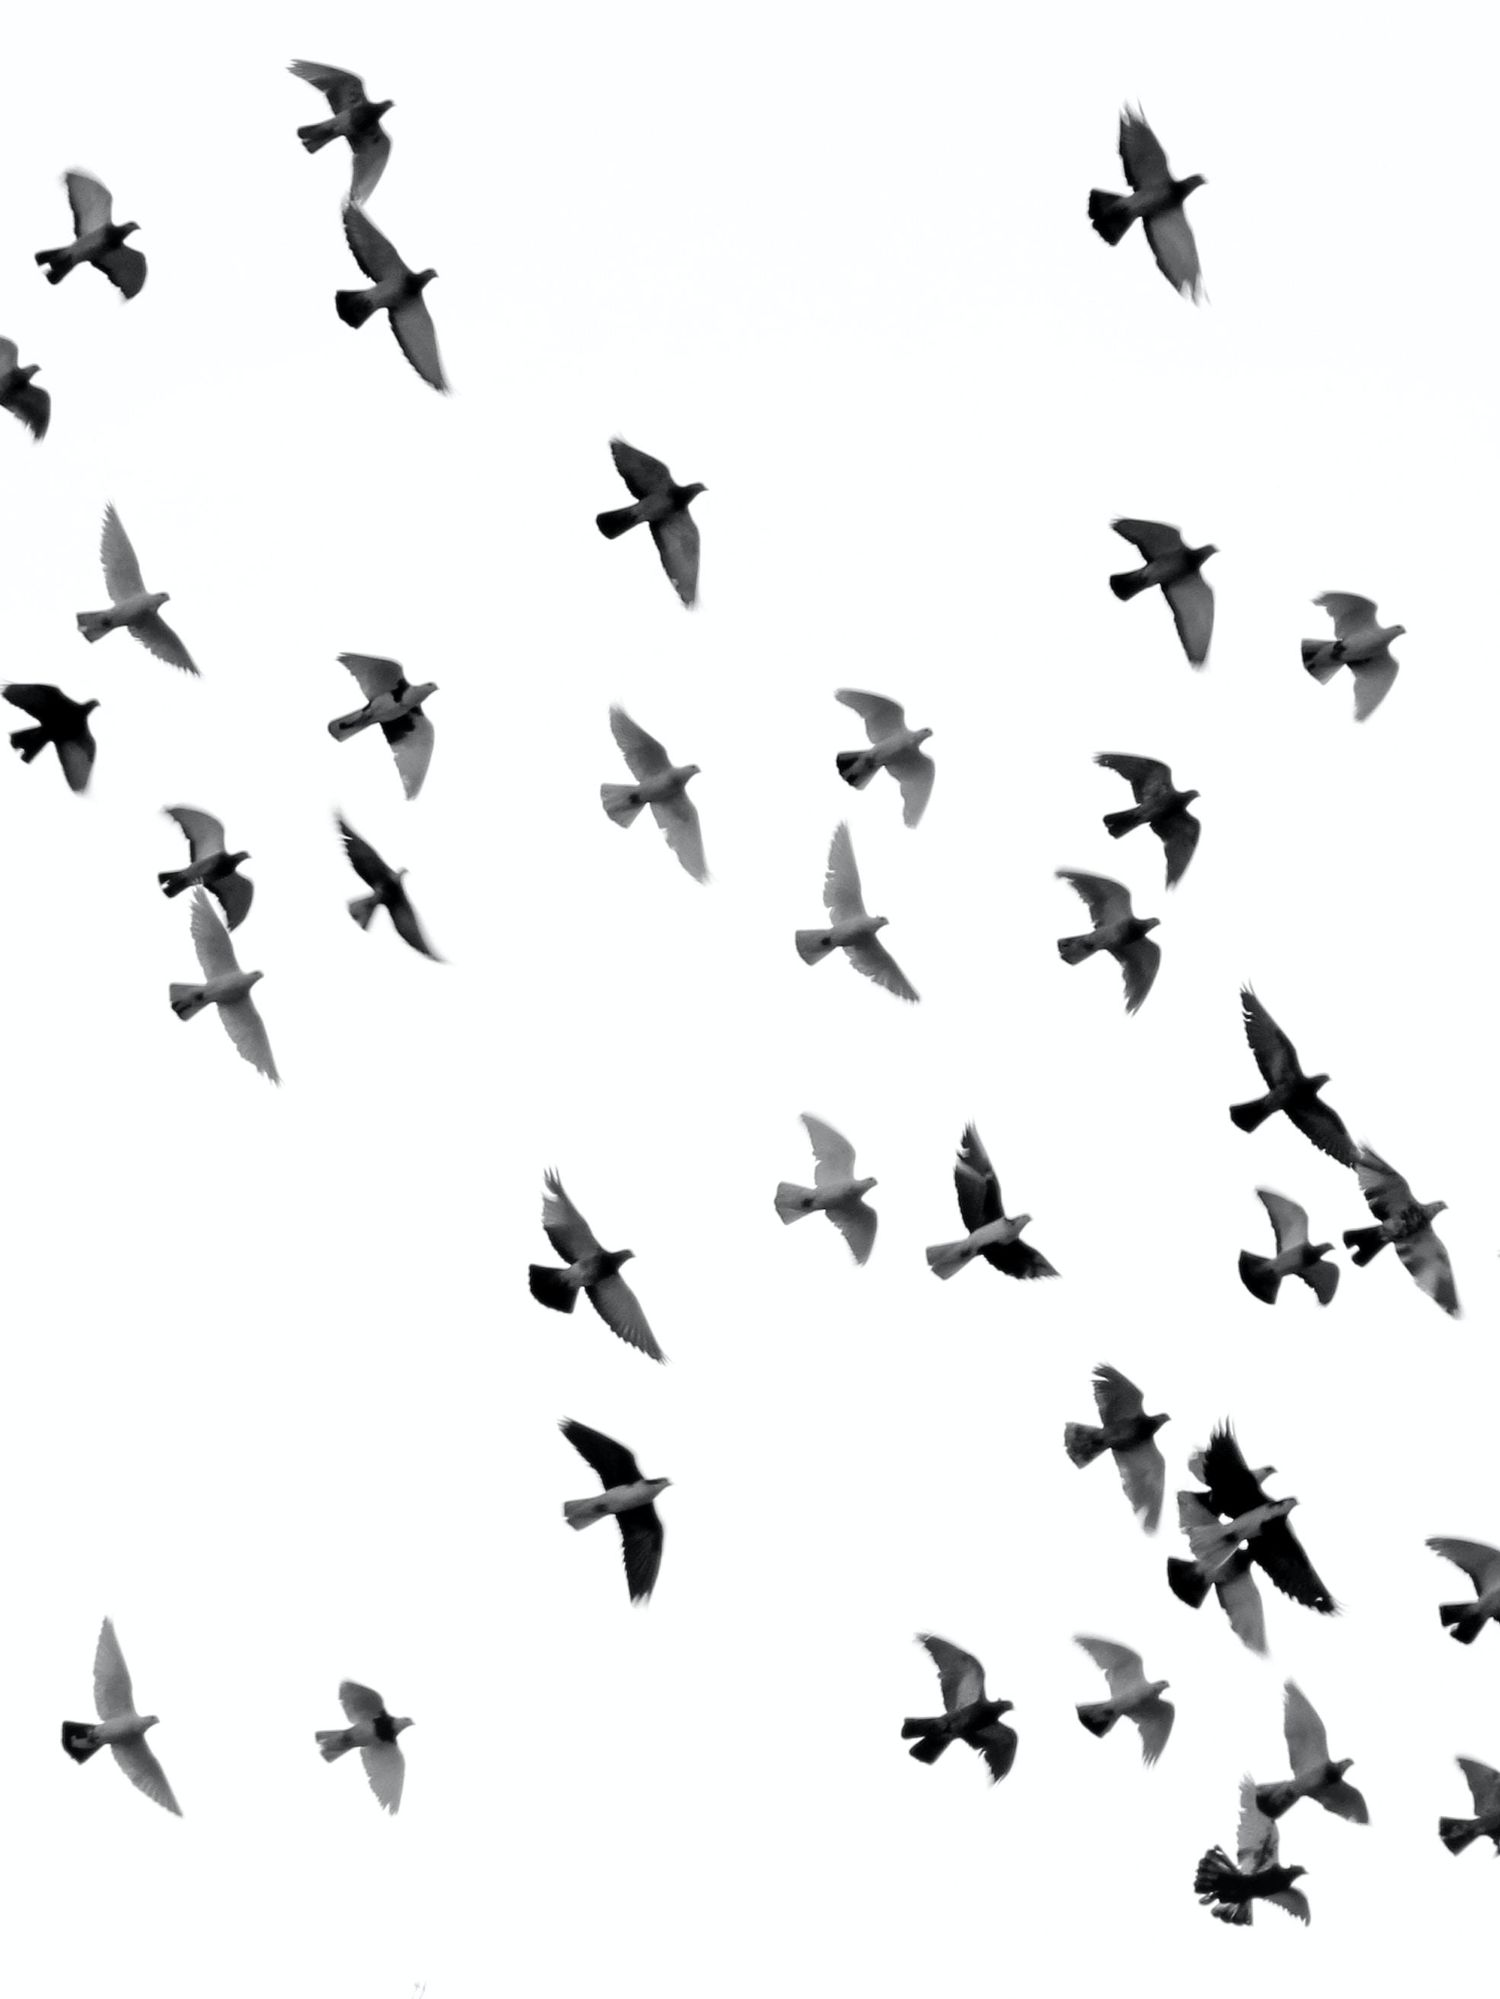 'Overwhelming': hundreds of migrating birds die after crashing into NYC glass towers